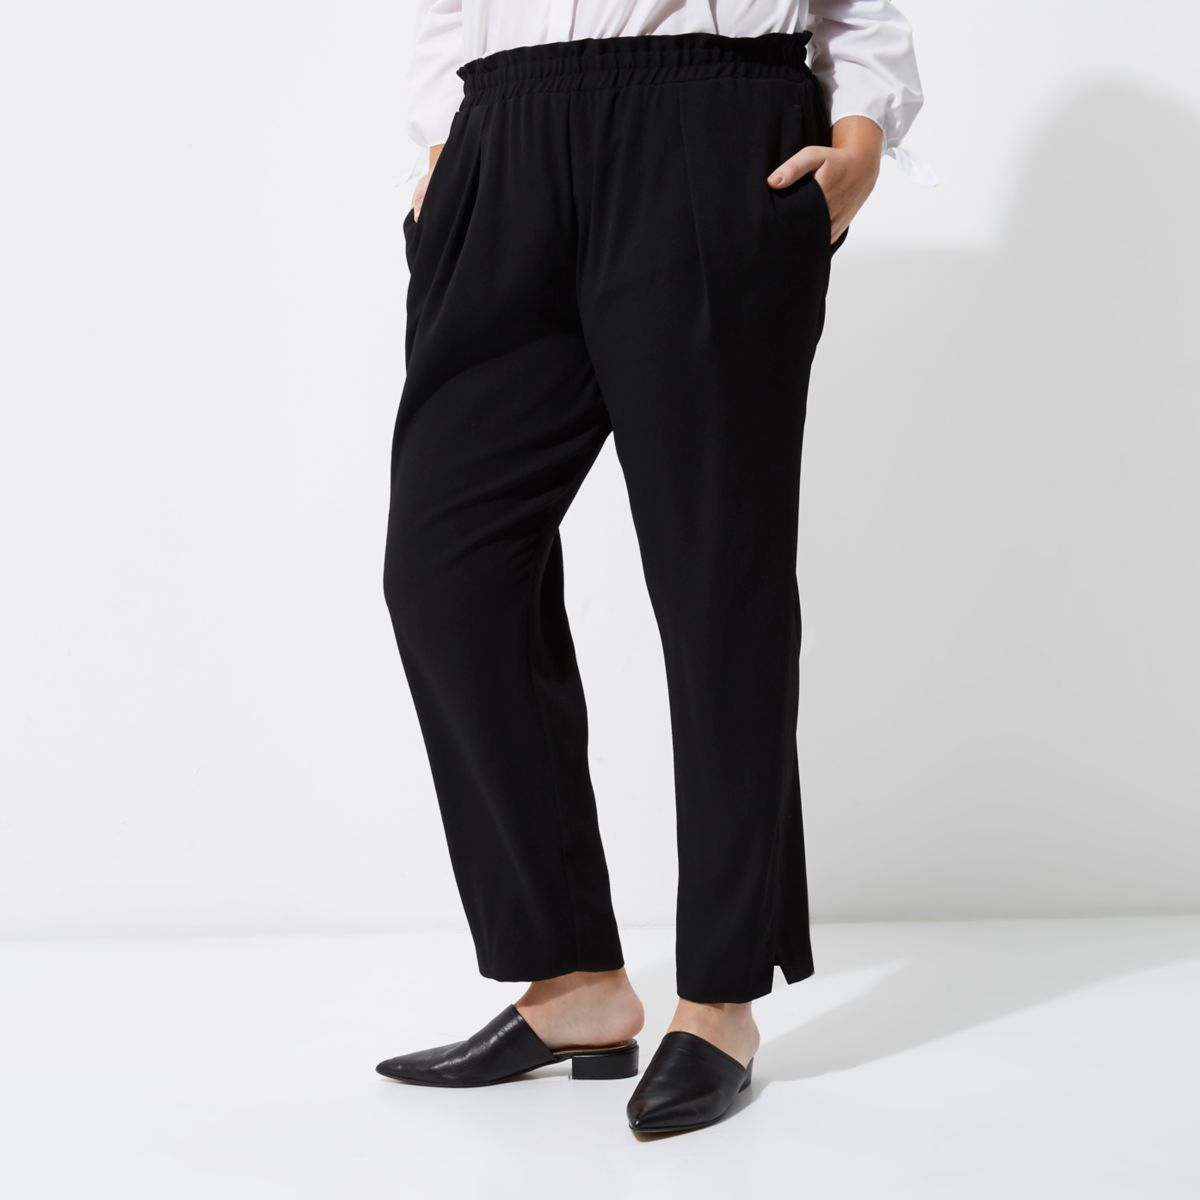 Plus black tapered trousers